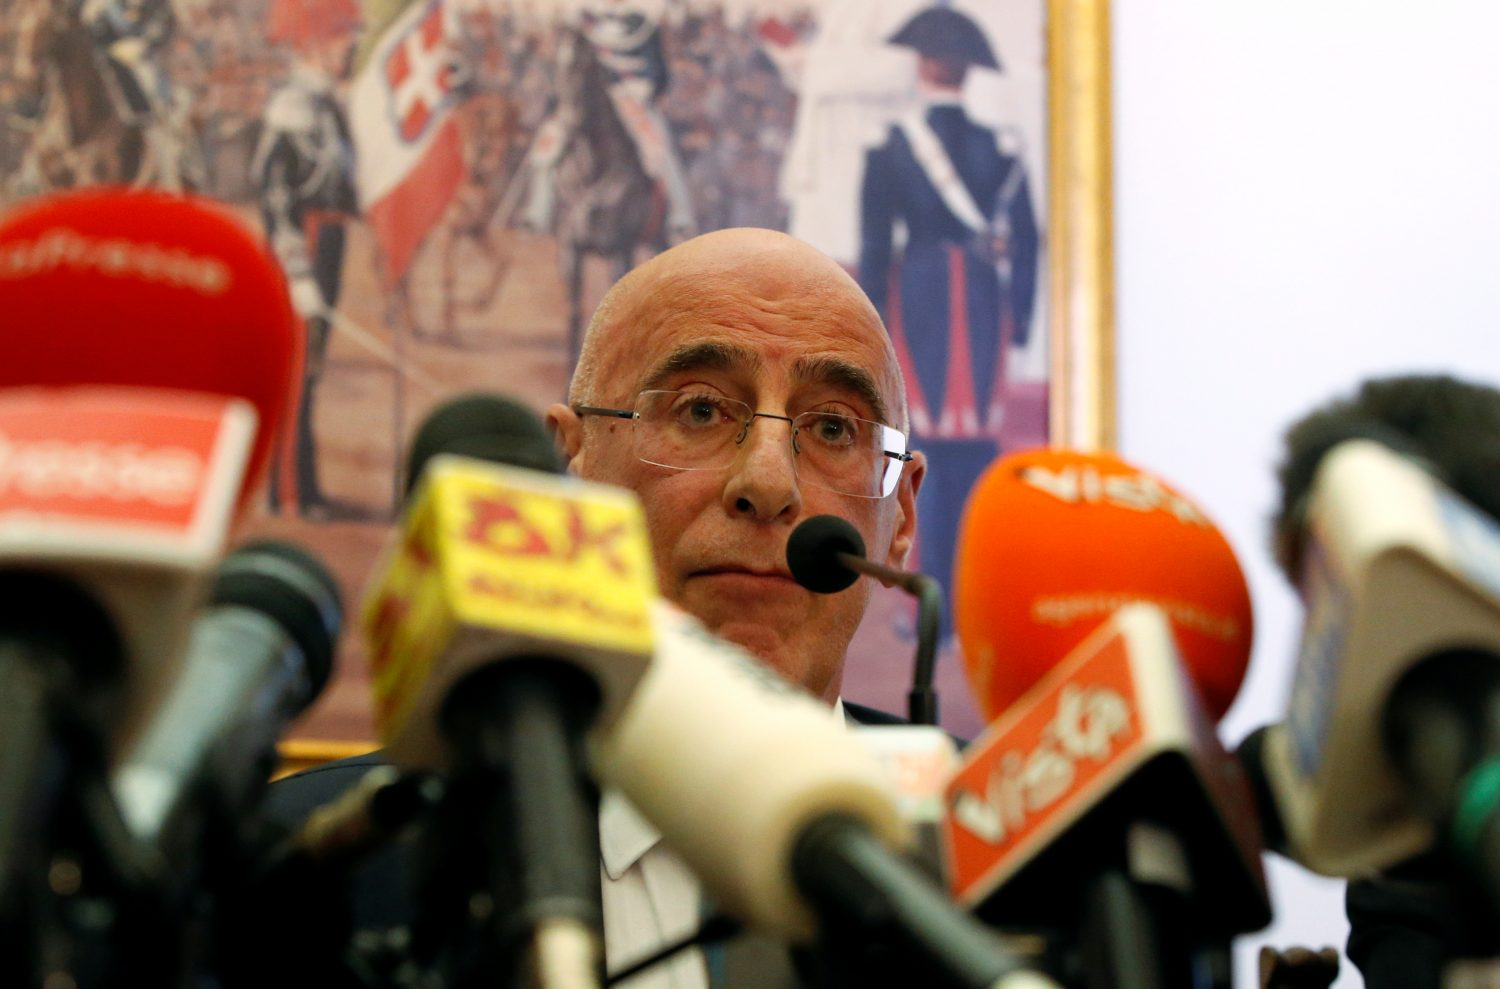 Regent Prosecutor Michele Prestipino attends a news conference after the killing of Carabinieri military police officer Mario Cerciello Rega in Rome, Italy July 30, 2019. REUTERS/Ciro De Luca